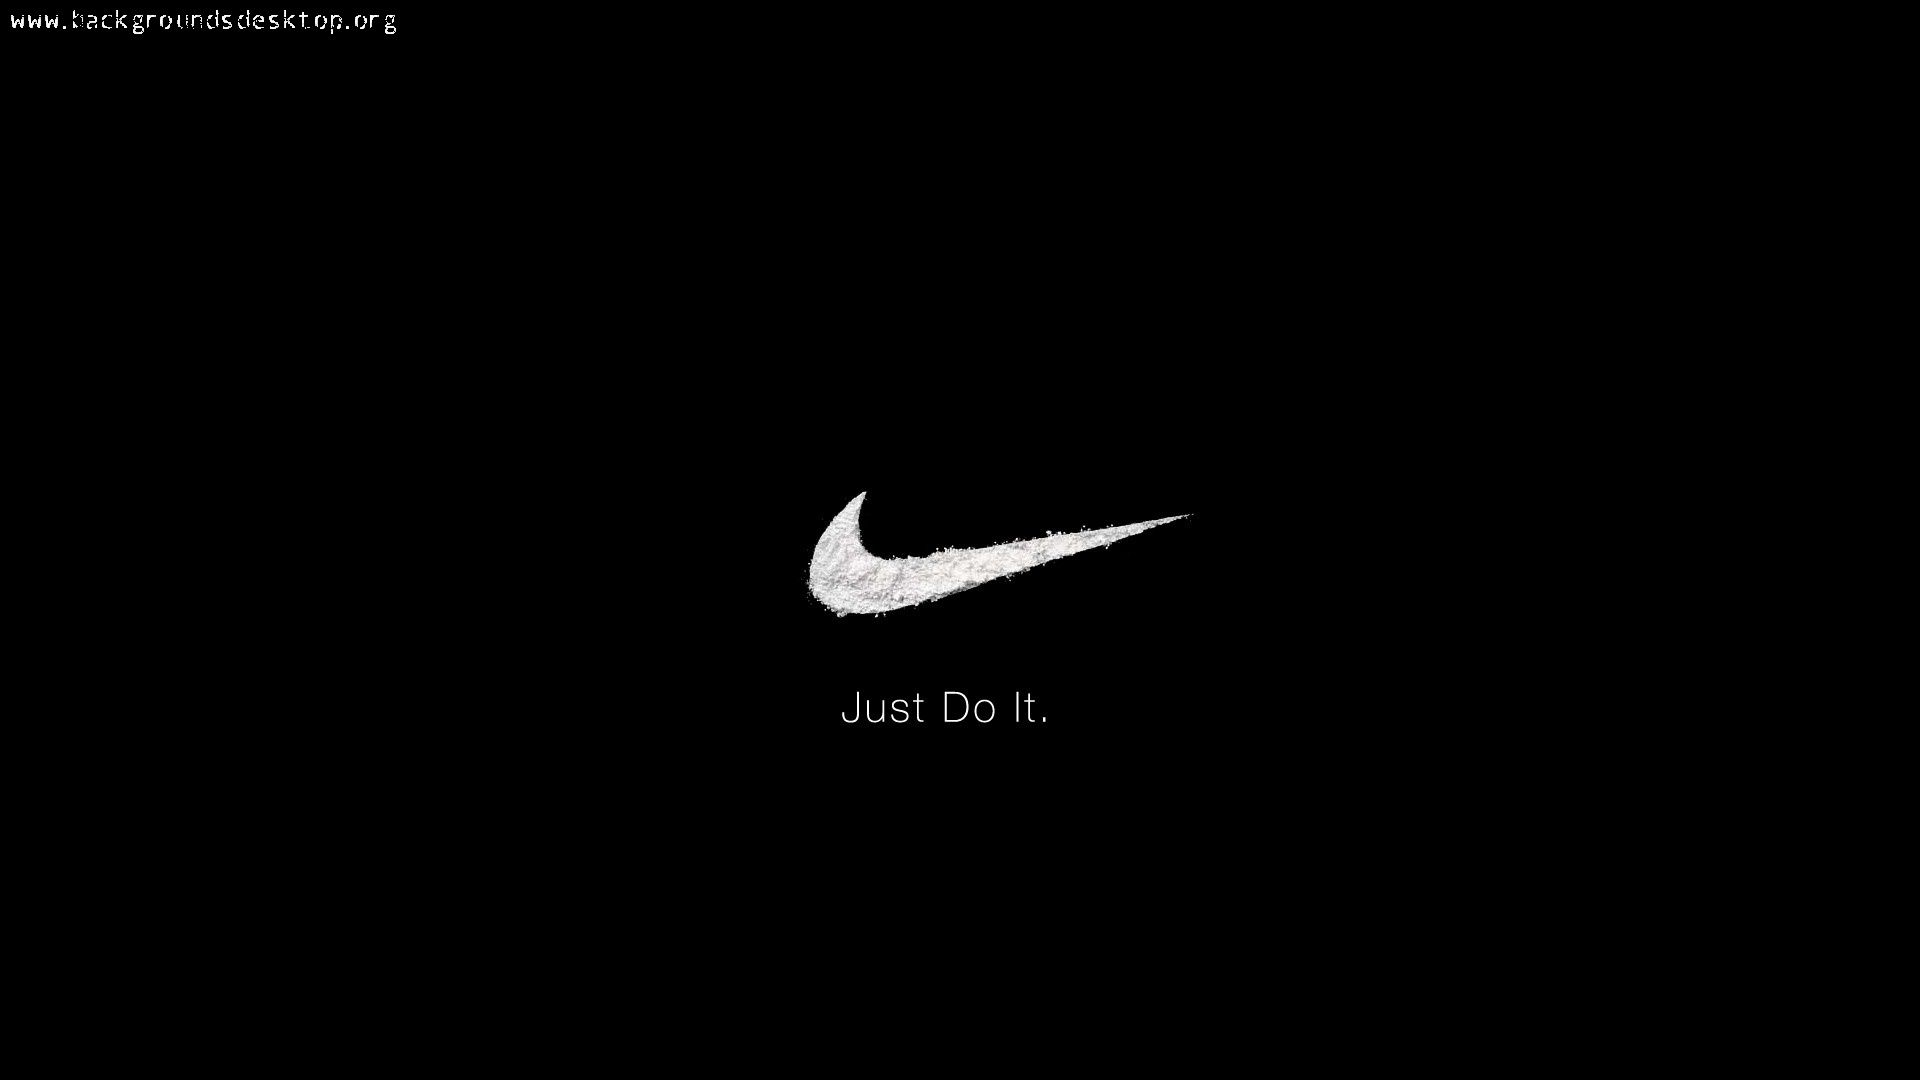 Nike Just Do It Soccer Wallpapers Phone with High Resolution 1920x1080 px  57.29 KB